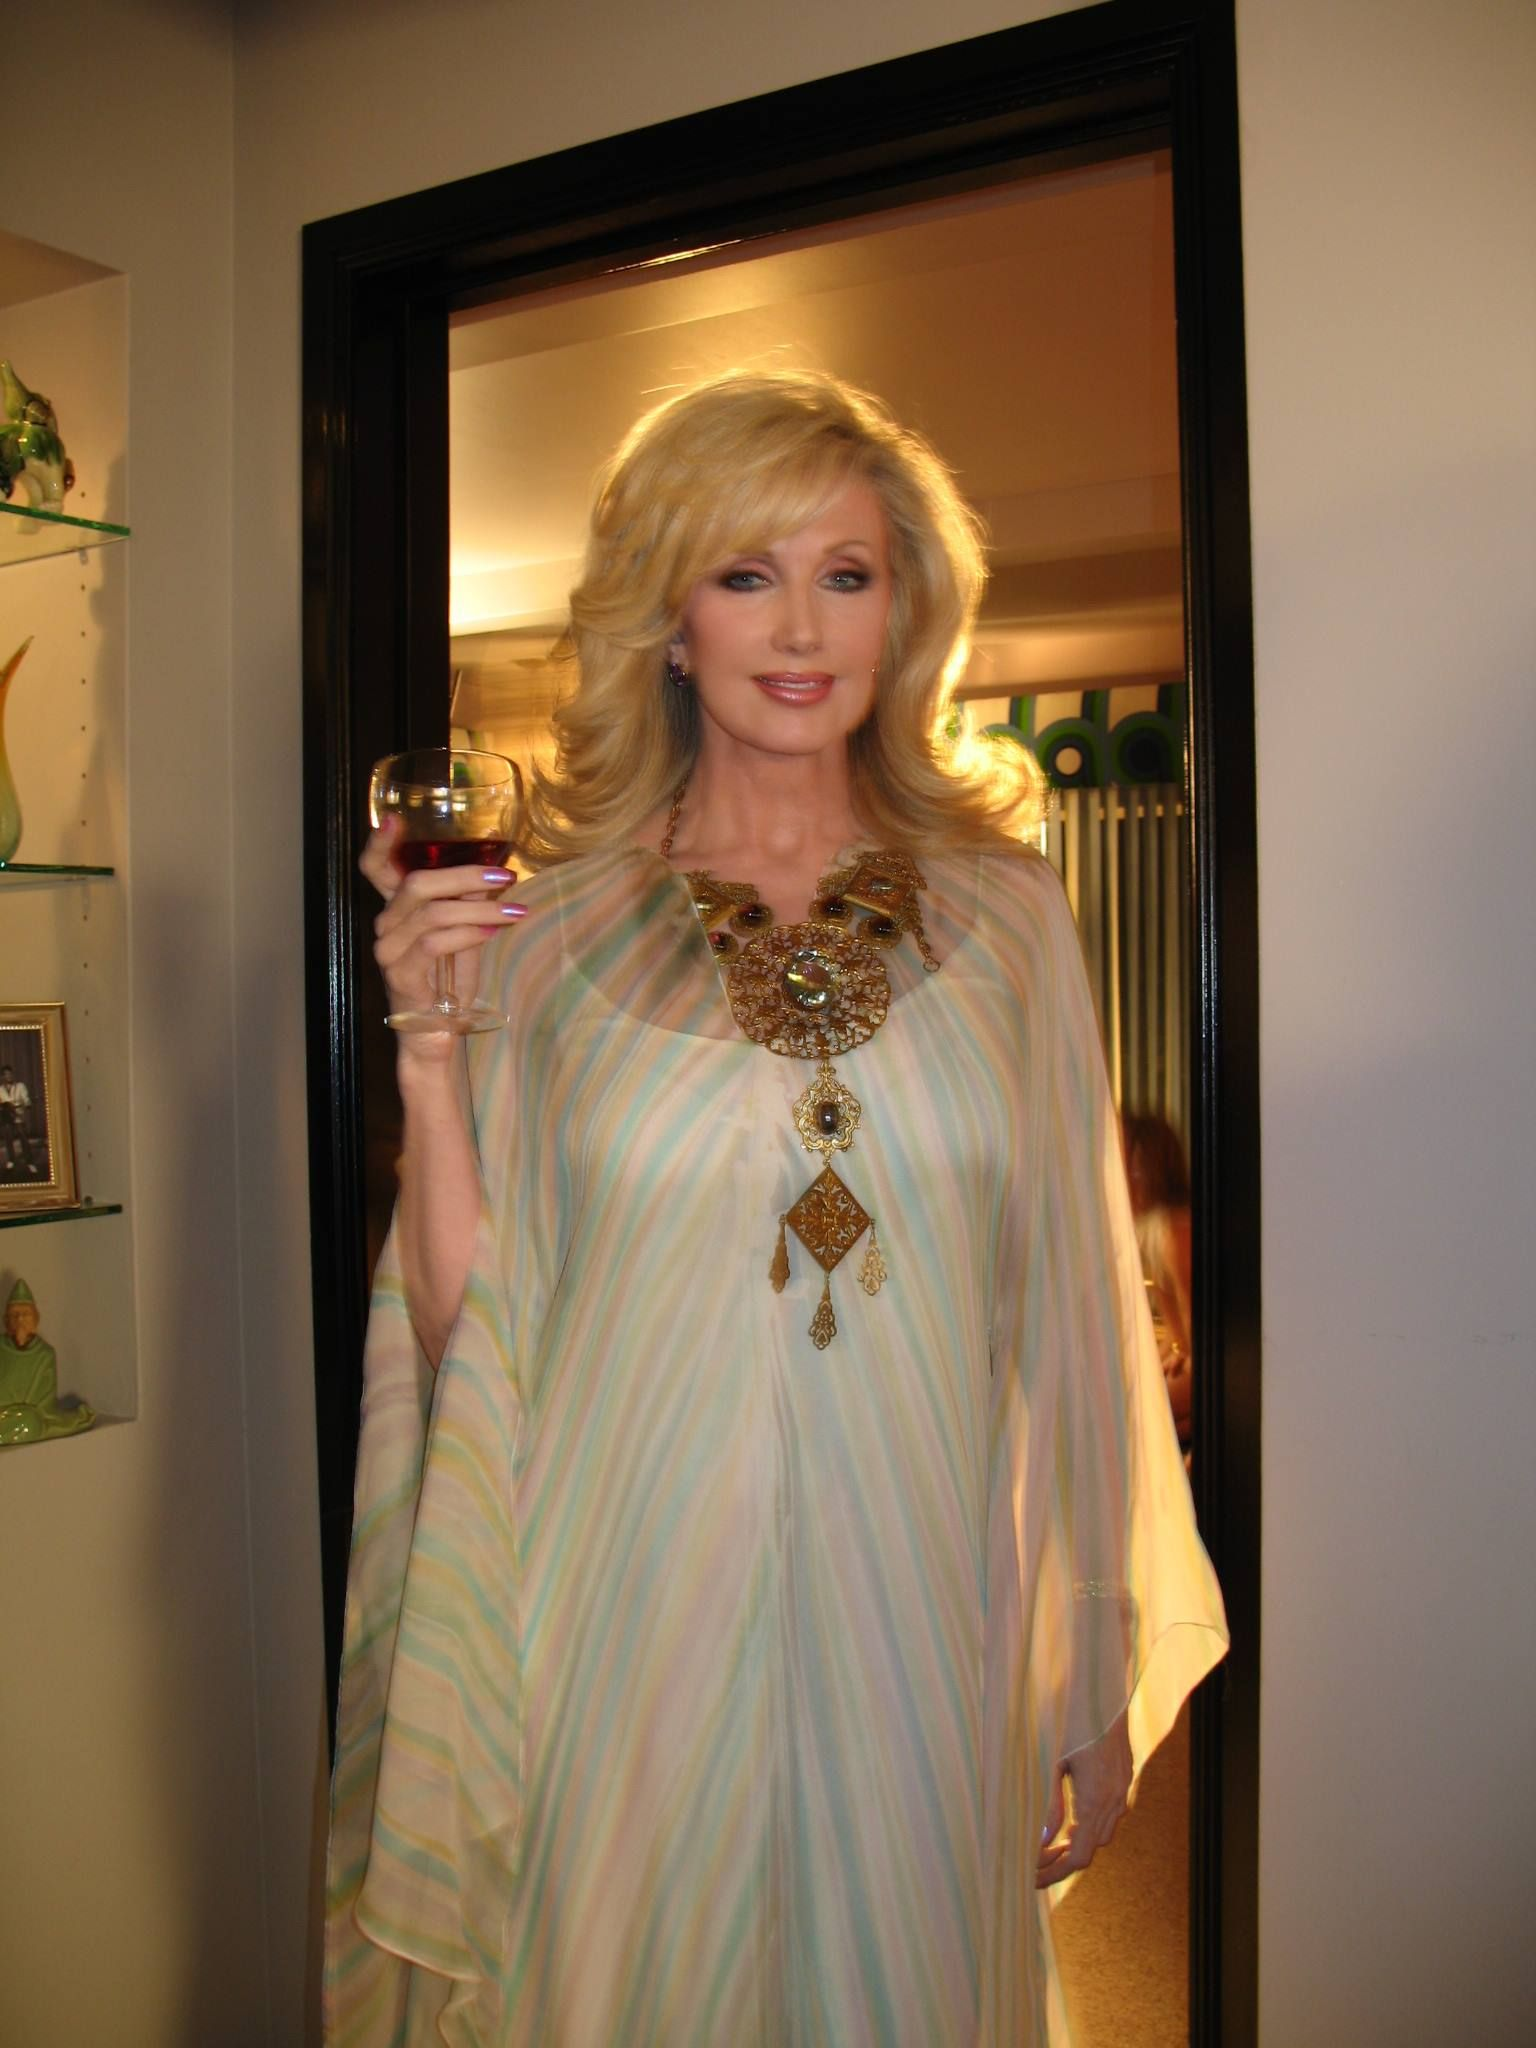 2019 Morgan Fairchild naked (76 photos), Topless, Cleavage, Twitter, cleavage 2006